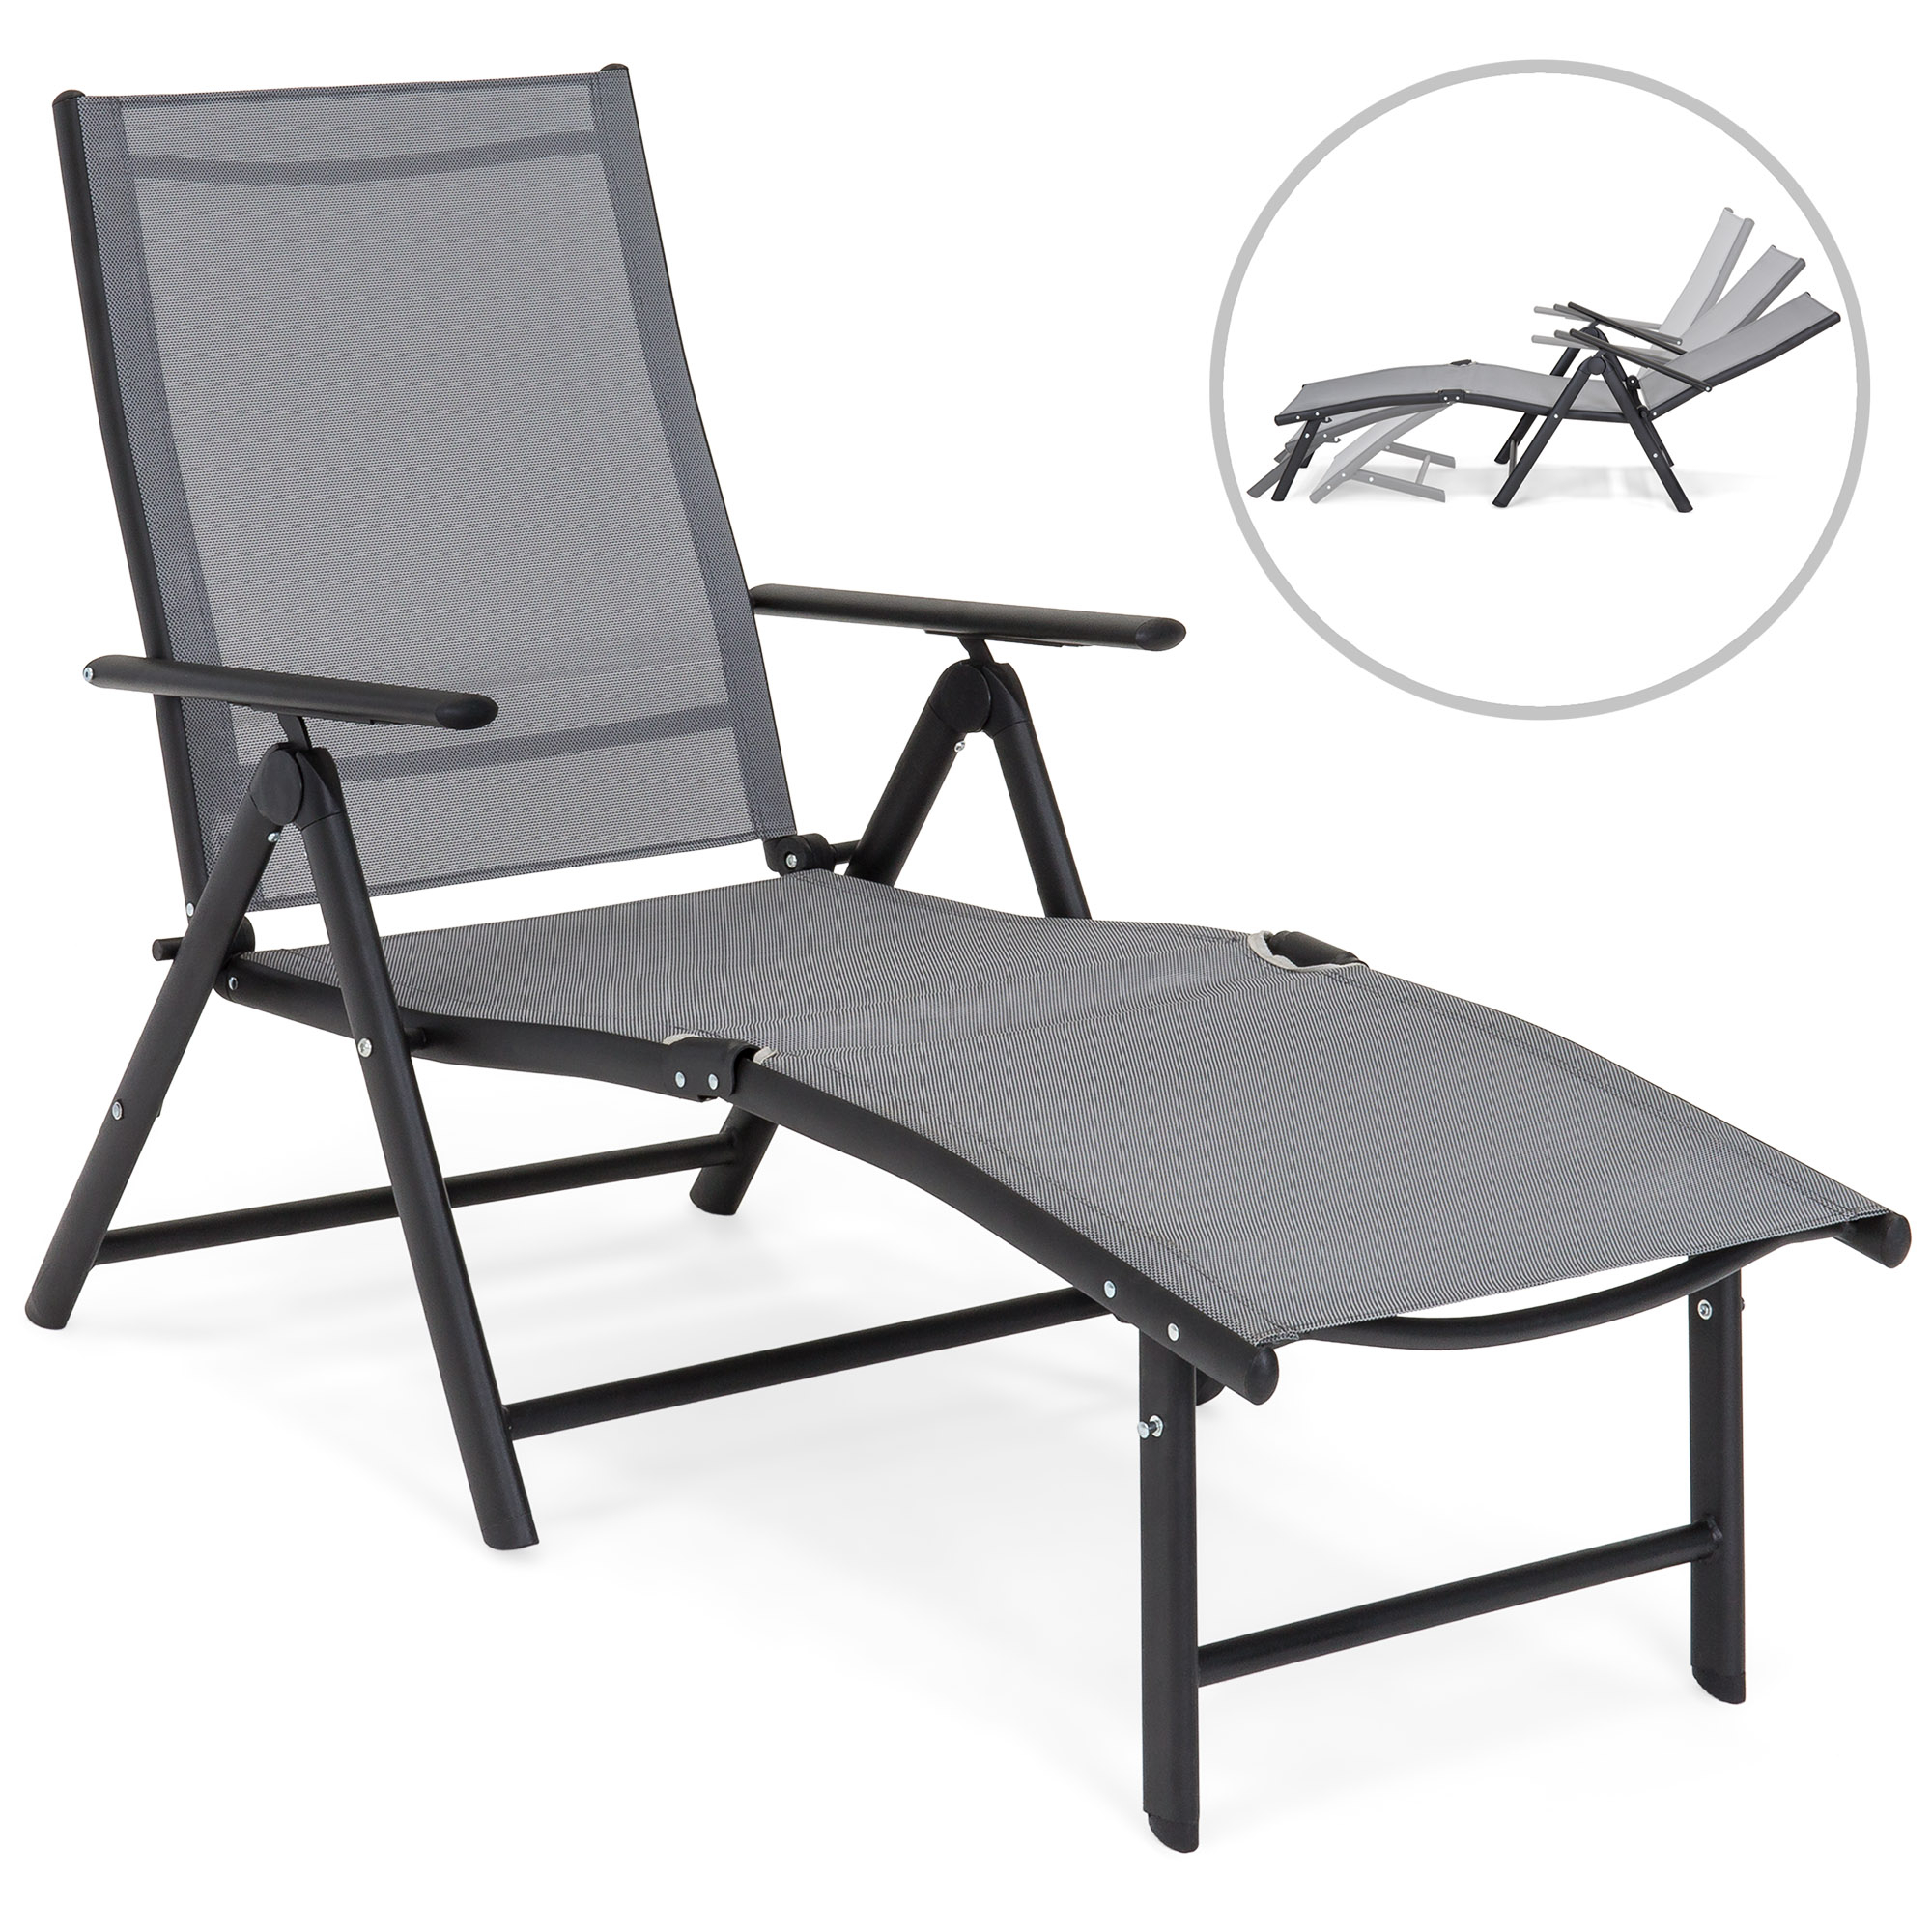 Most Current Curved Folding Chaise Loungers Inside Best Choice Products Reclining Folding Chaise Lounge Chair For Outdoor, Patio, Poolside W/ Armrests, Adjustable Foot Rest – Gray (View 6 of 25)